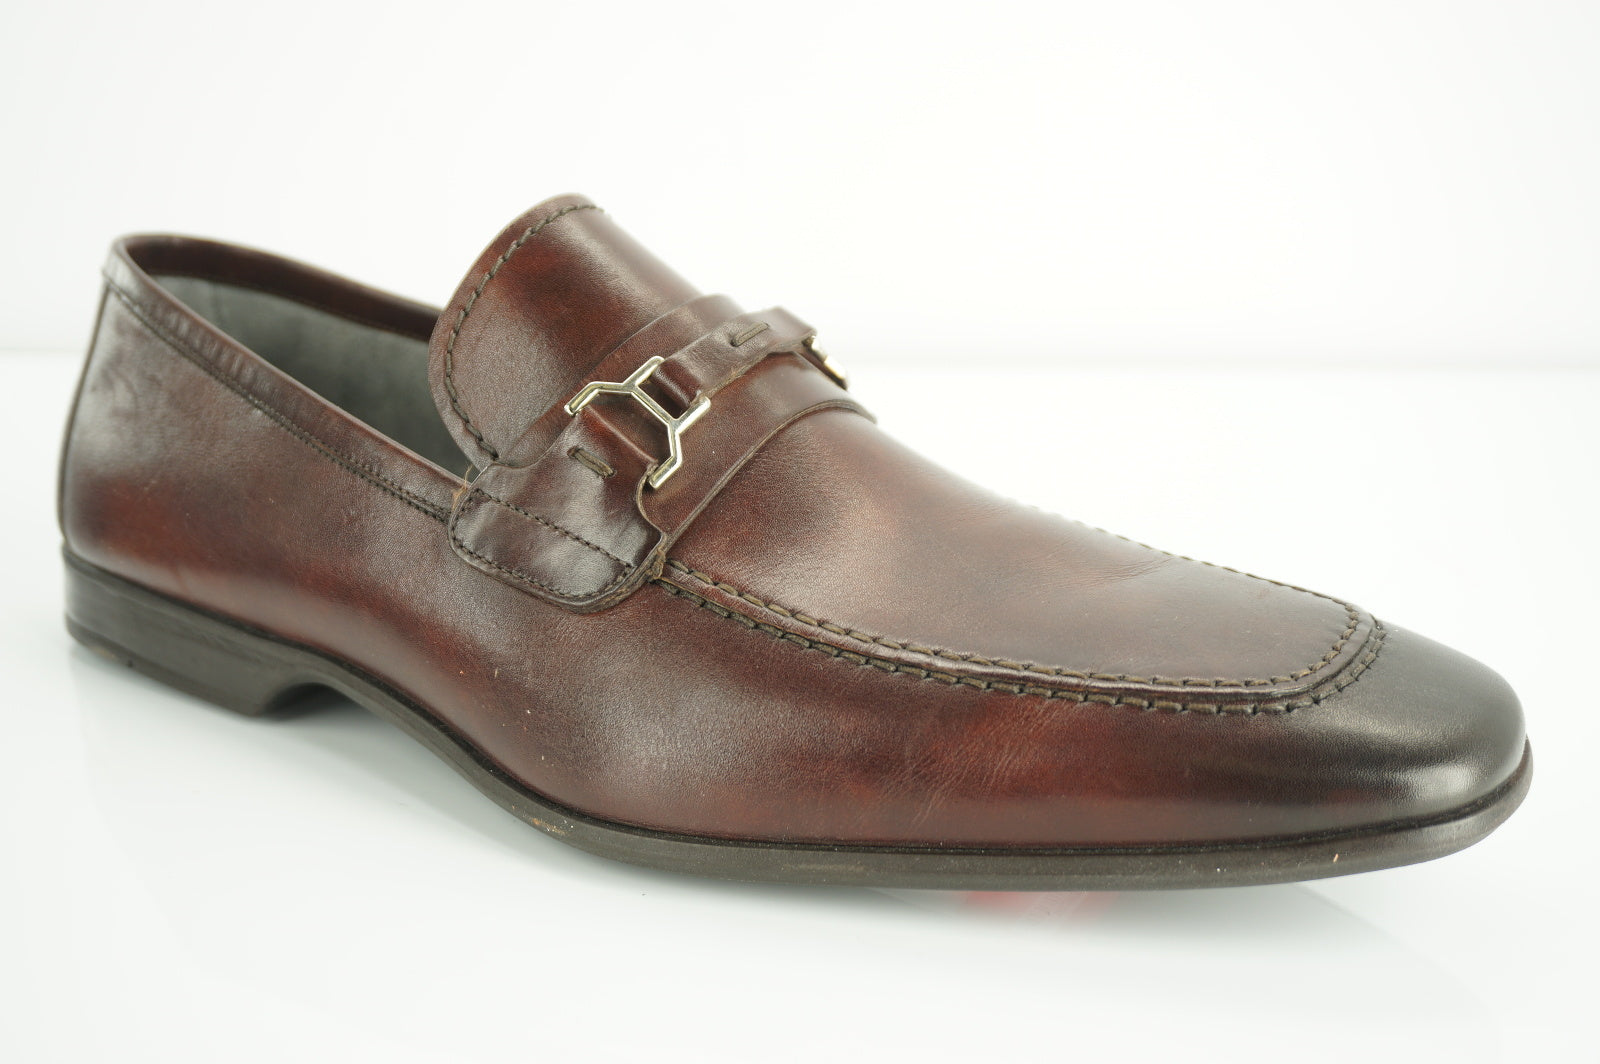 Magnanni Chaplin Lino Brown Leather Apron Toe Loafers Size 10 Men's Shoe $335